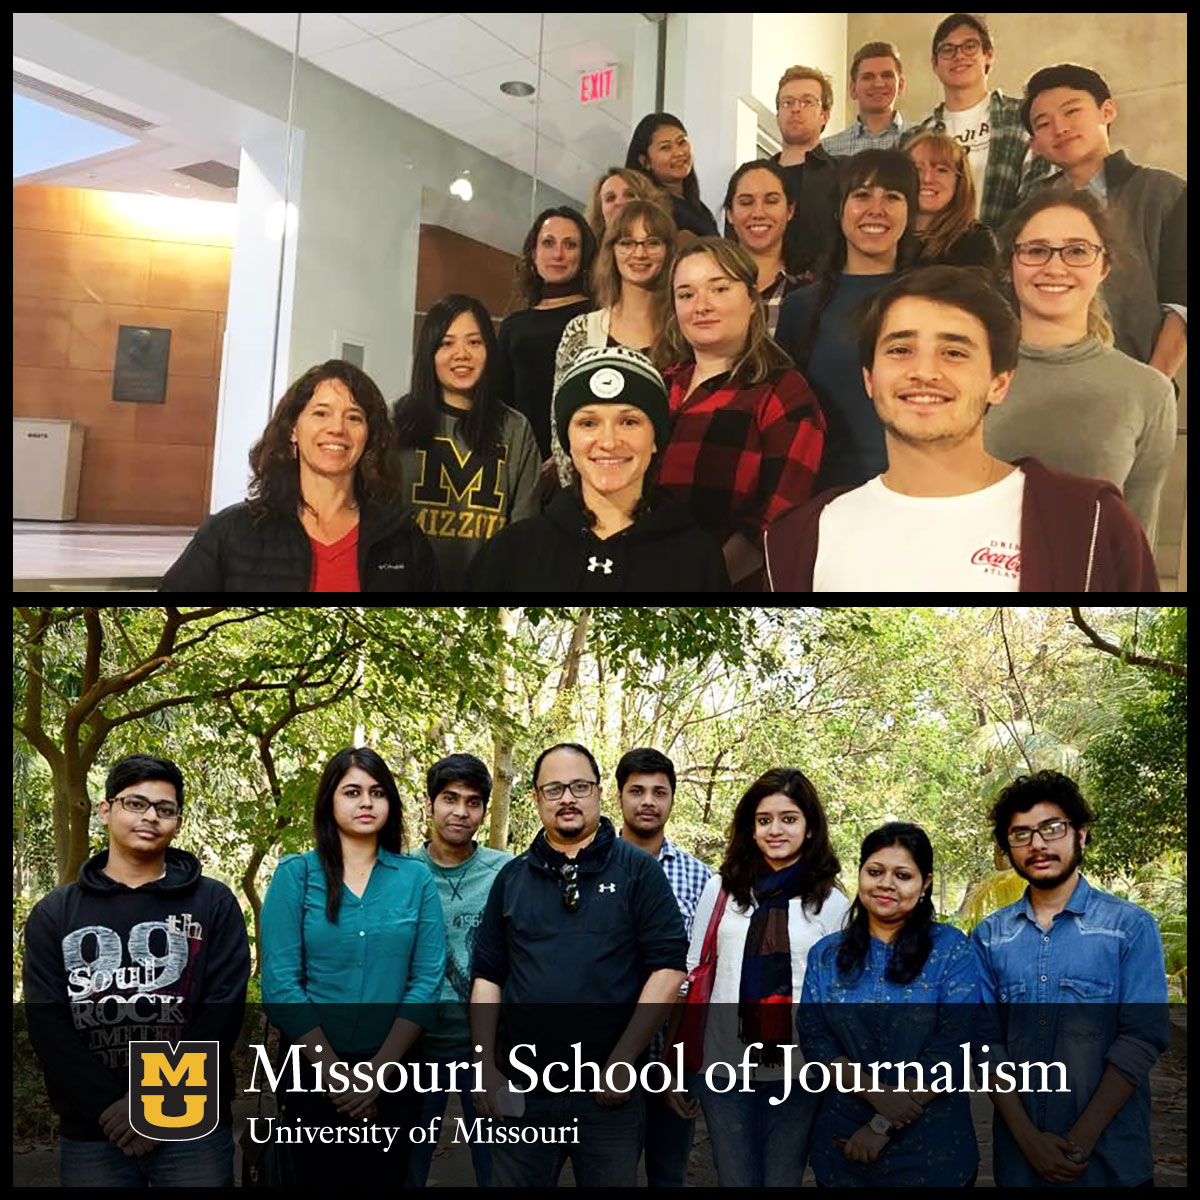 Missouri School of Journalism students and faculty have formed a unique international journalism partnership with journalism students in India.